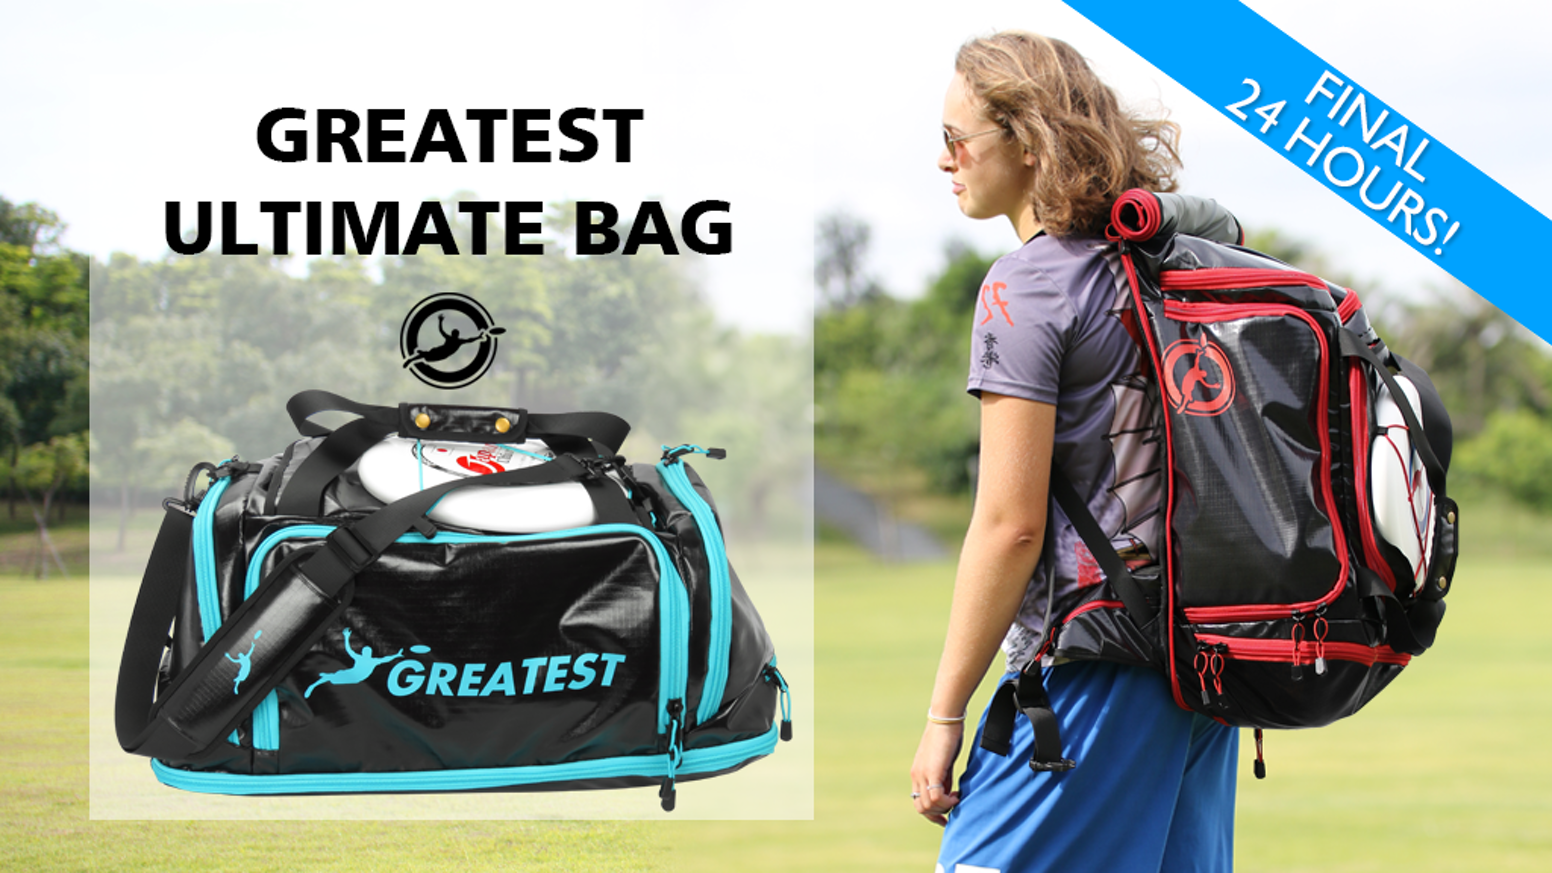 Don't waste time or energy on bags designed for other sports - keep your gear dry, organized, and in ultimate style.